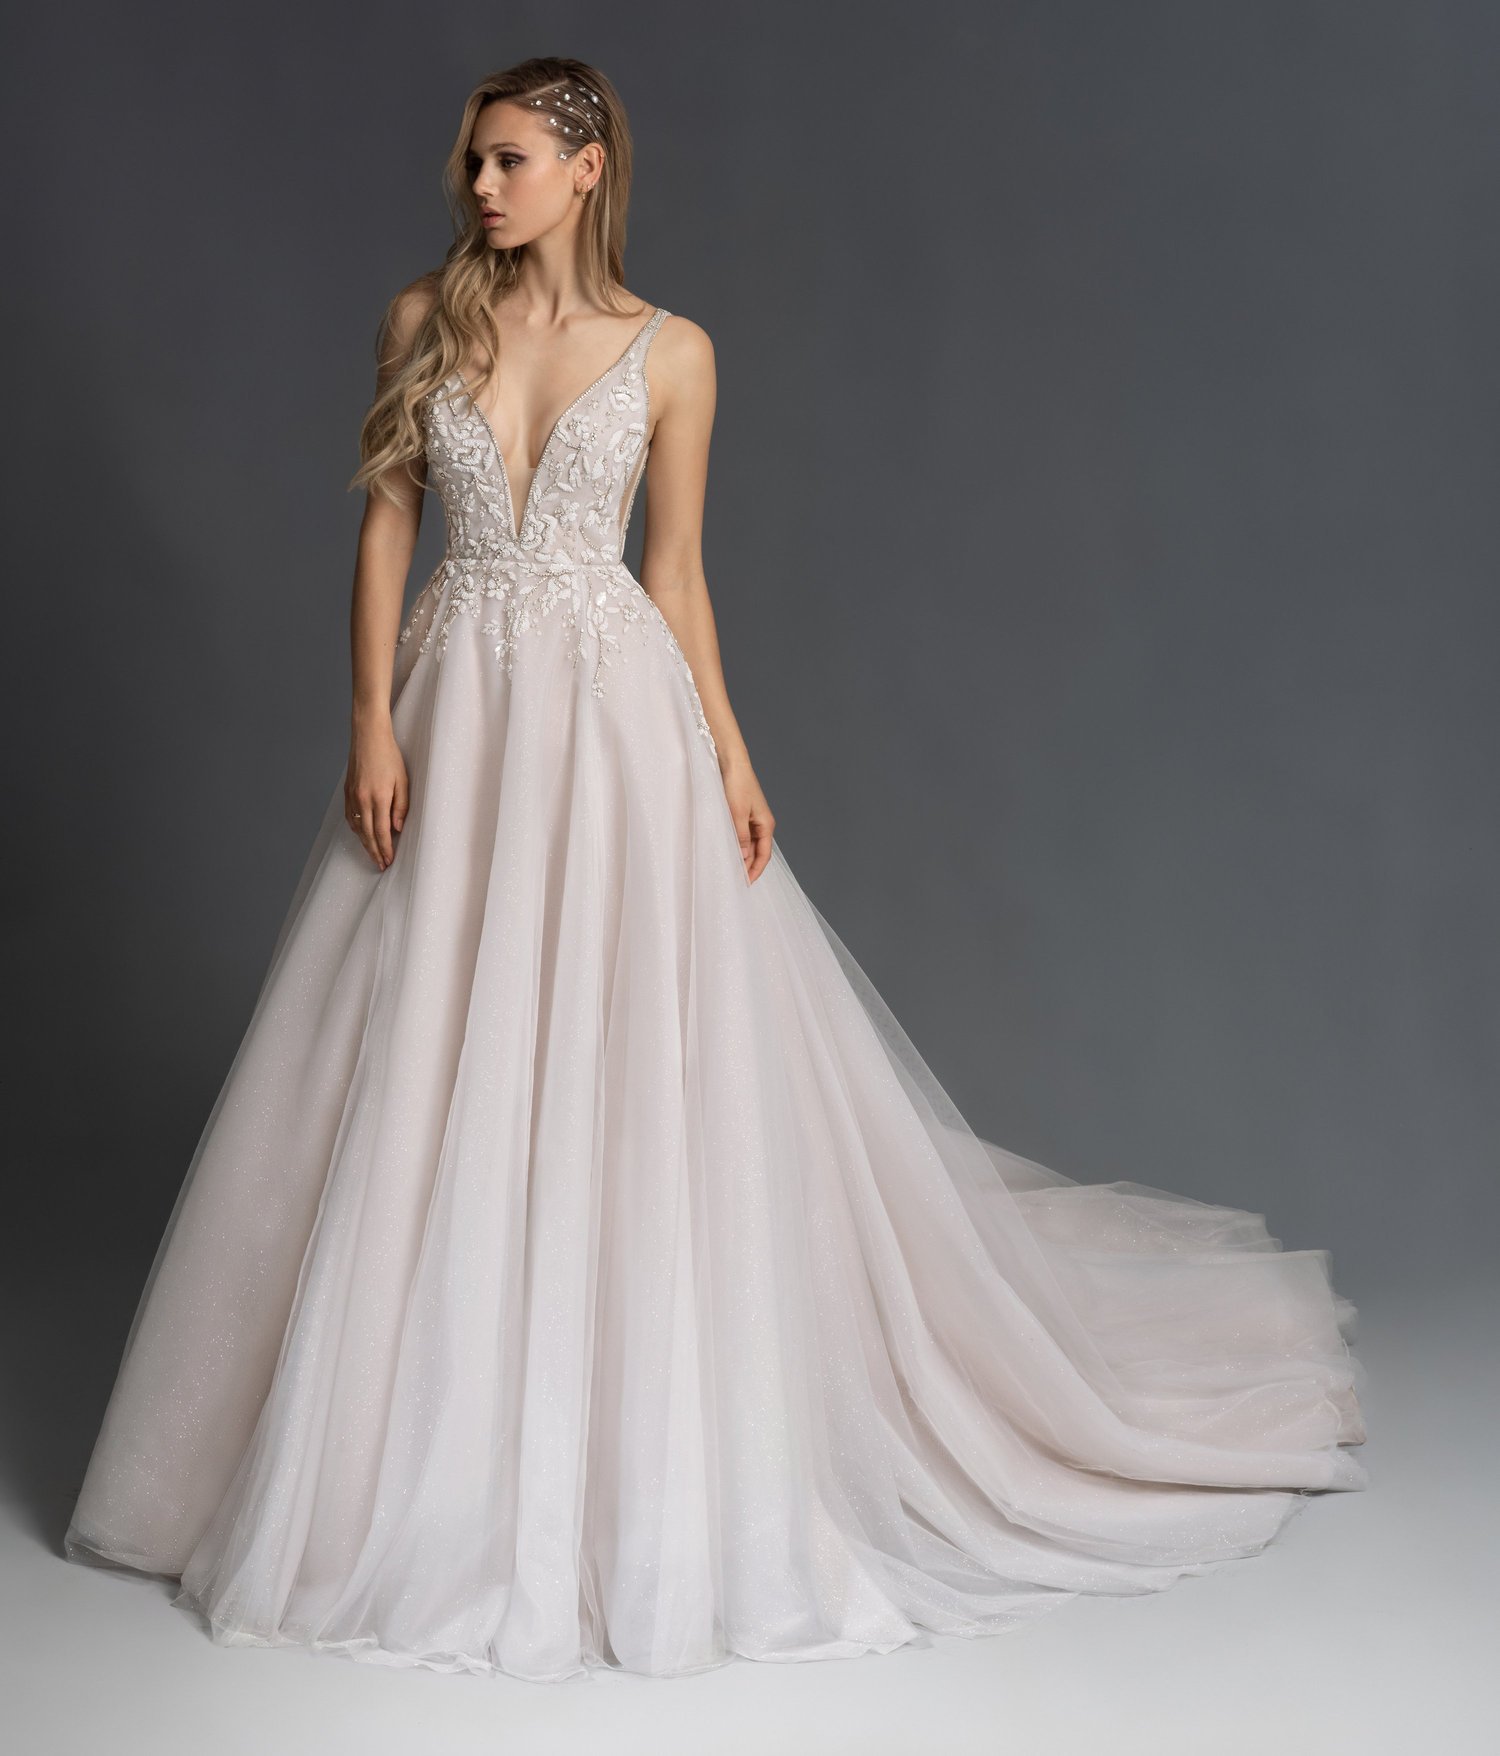 Designer Wedding Gowns Dresses: All That Glitters: Beaded Wedding Gowns From JLM Couture